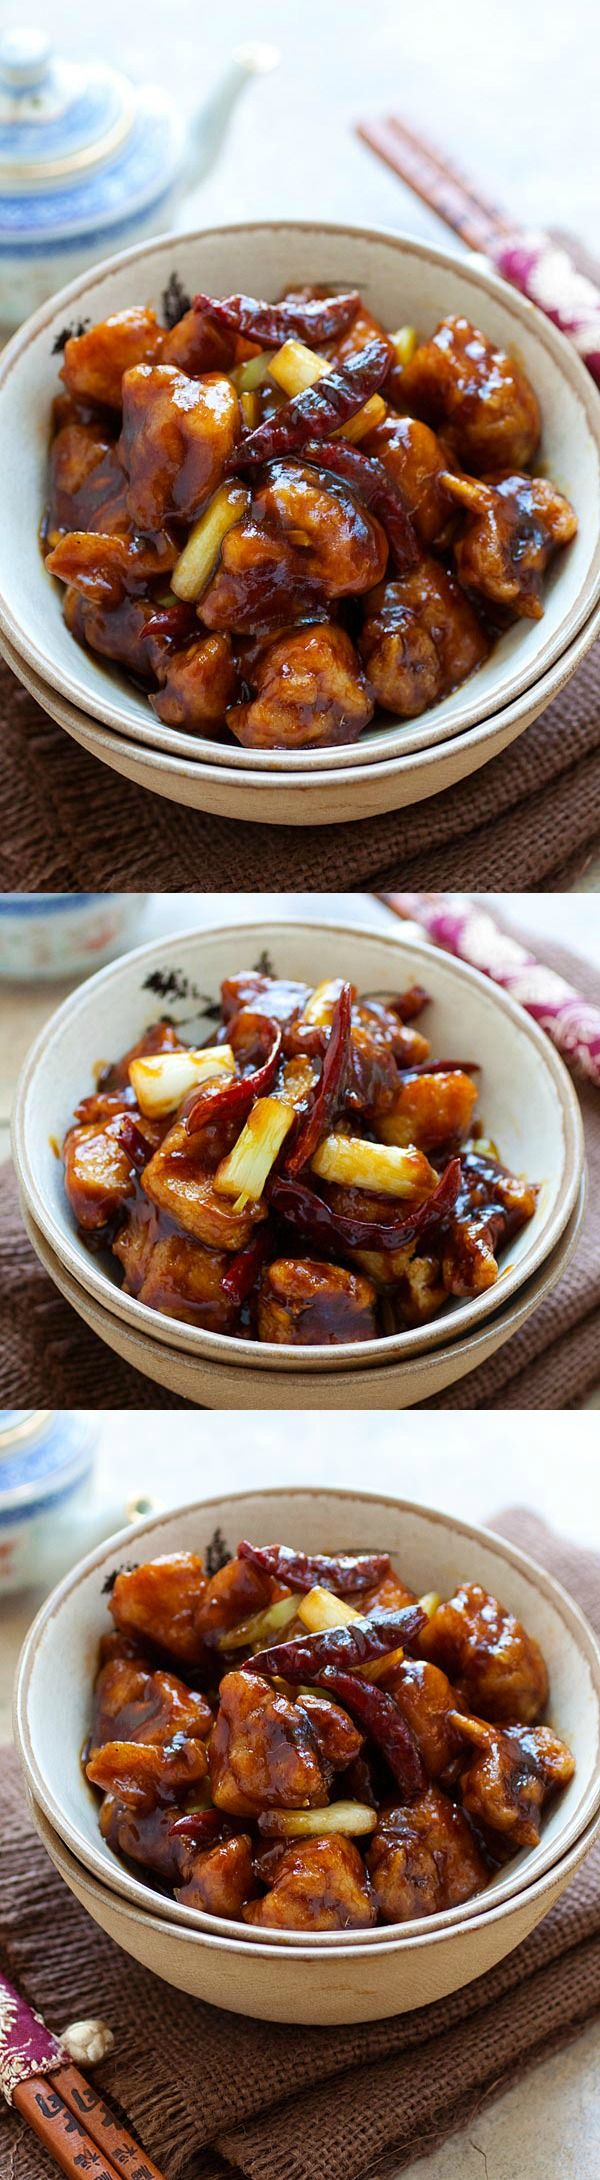 General Tso's chicken - BEST and easiest General Tso's Chicken ever. SO delicious and much better and healthier than Chinese takeout | rasamalaysia.com